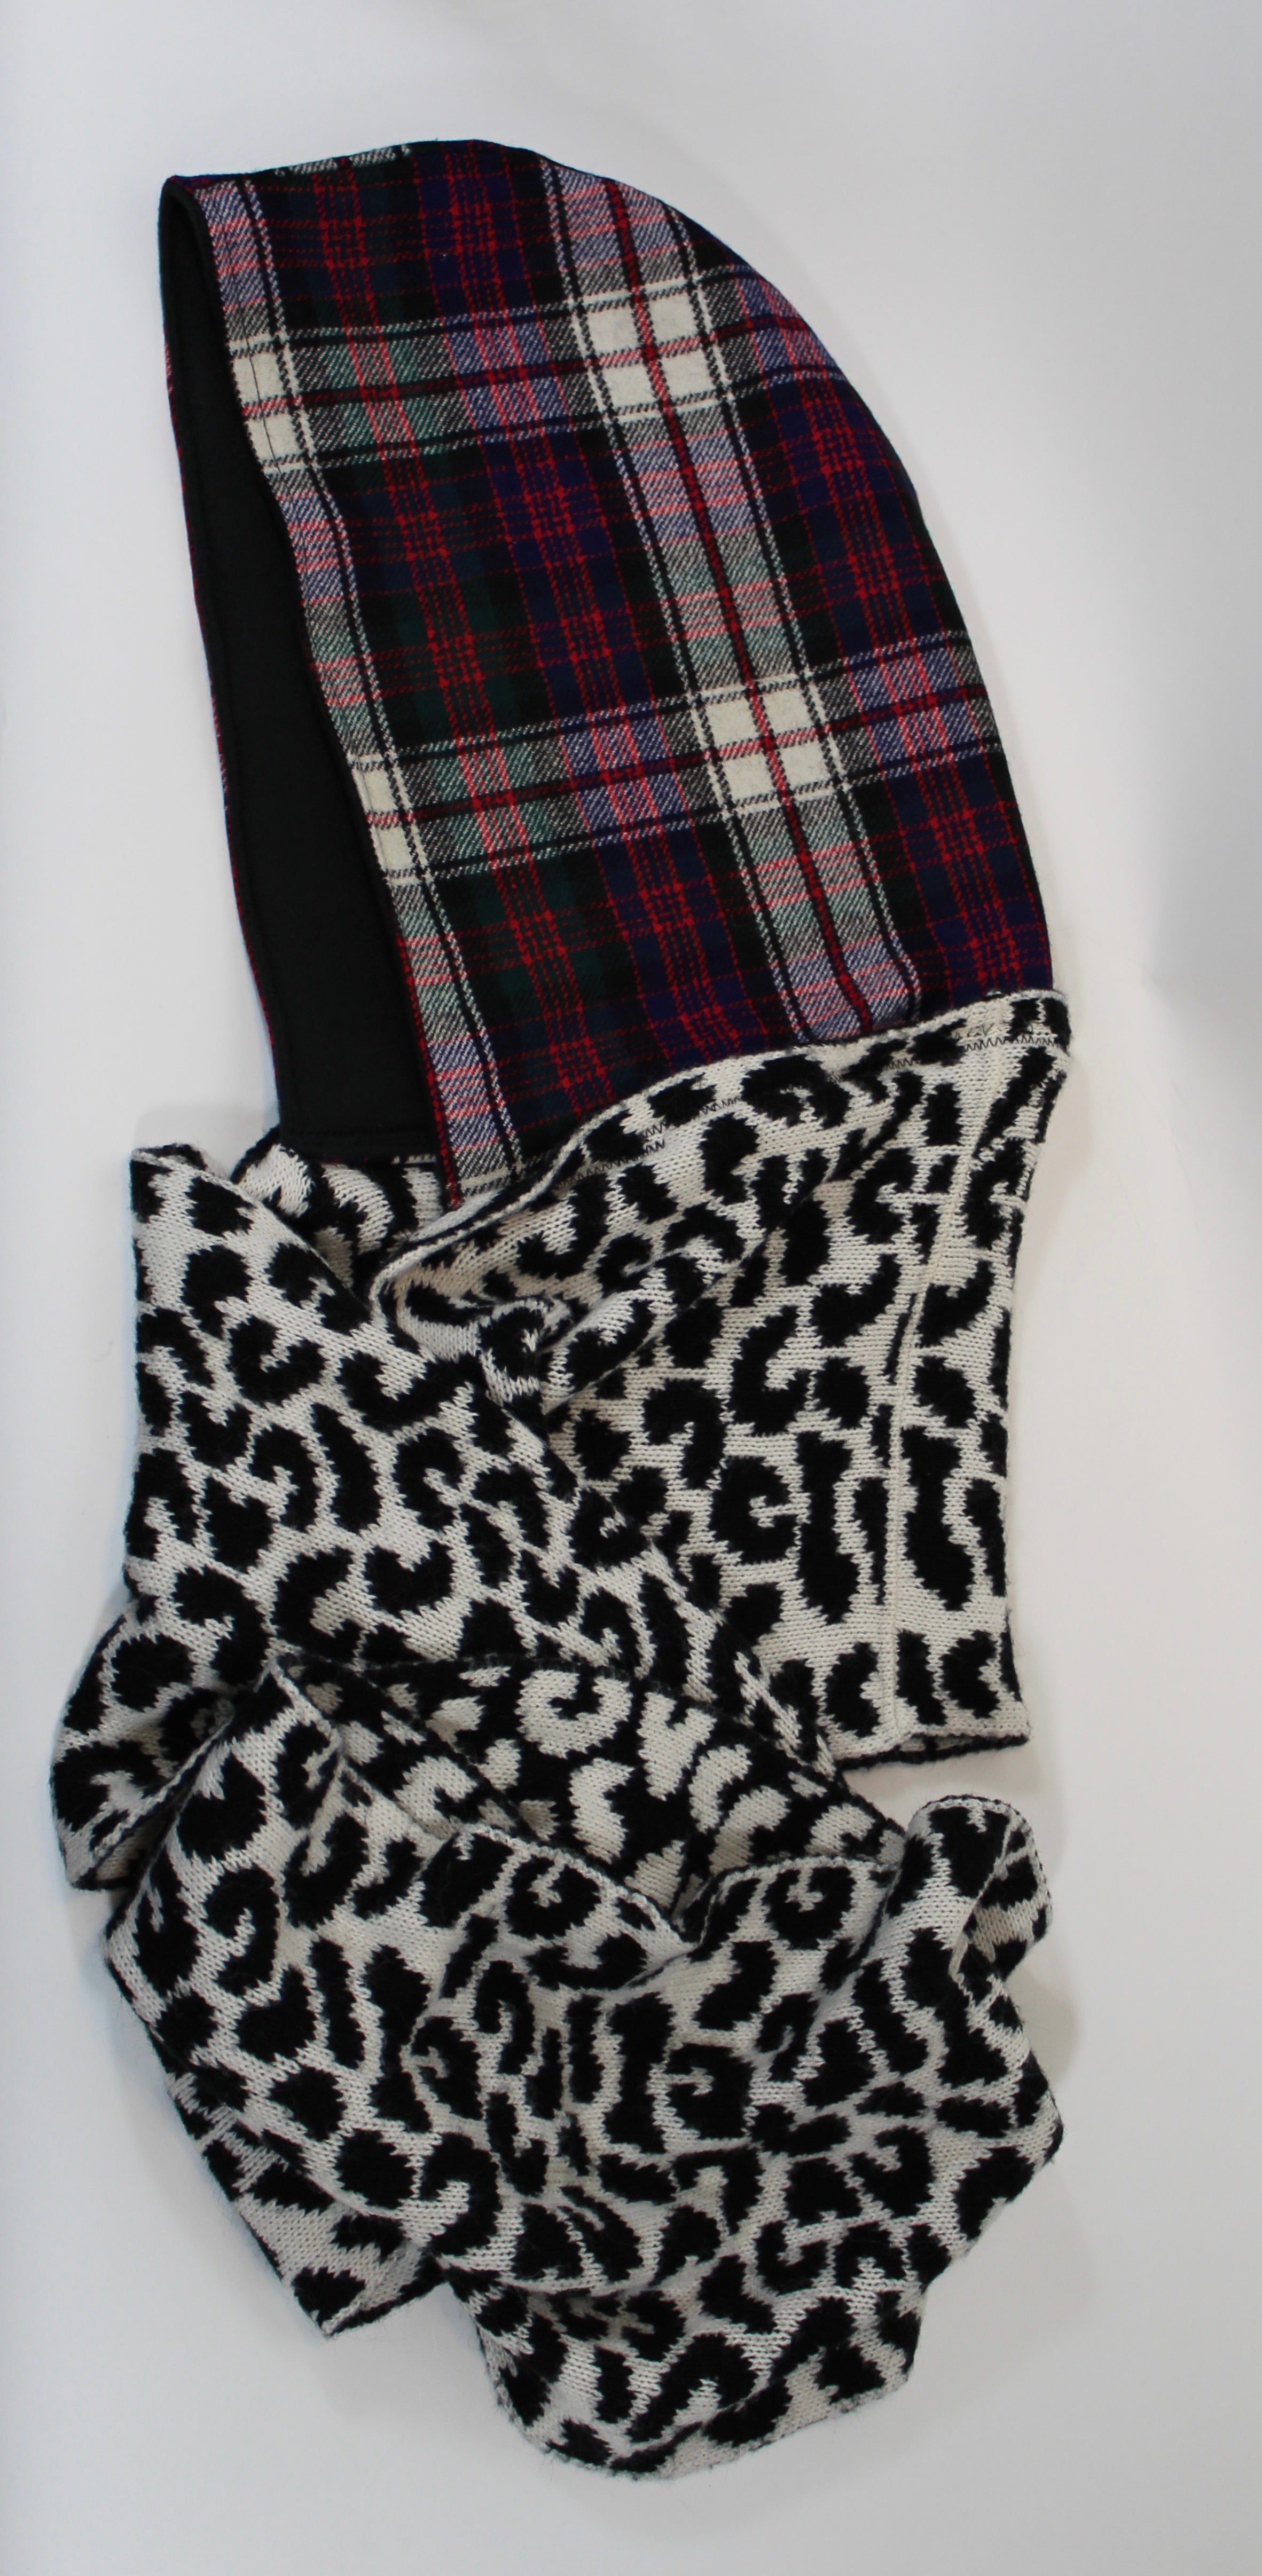 Multicolored Plaid Hoodie Scarf with Black Lining and Black and White Cheetah Print Infinity Scarf